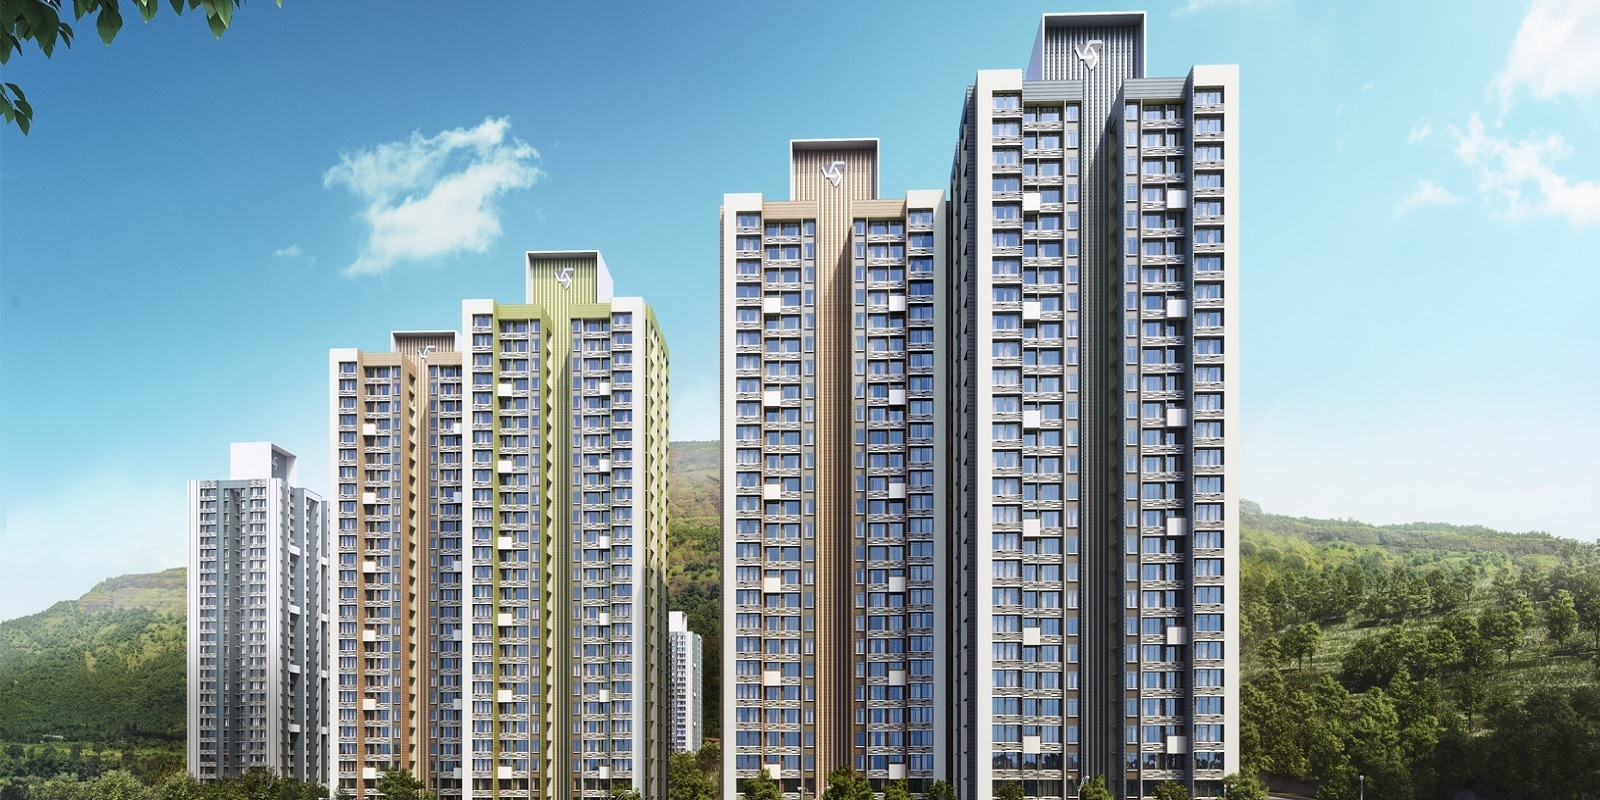 wadhwa wise city south block phase 1 b6 wing a4 project large image2